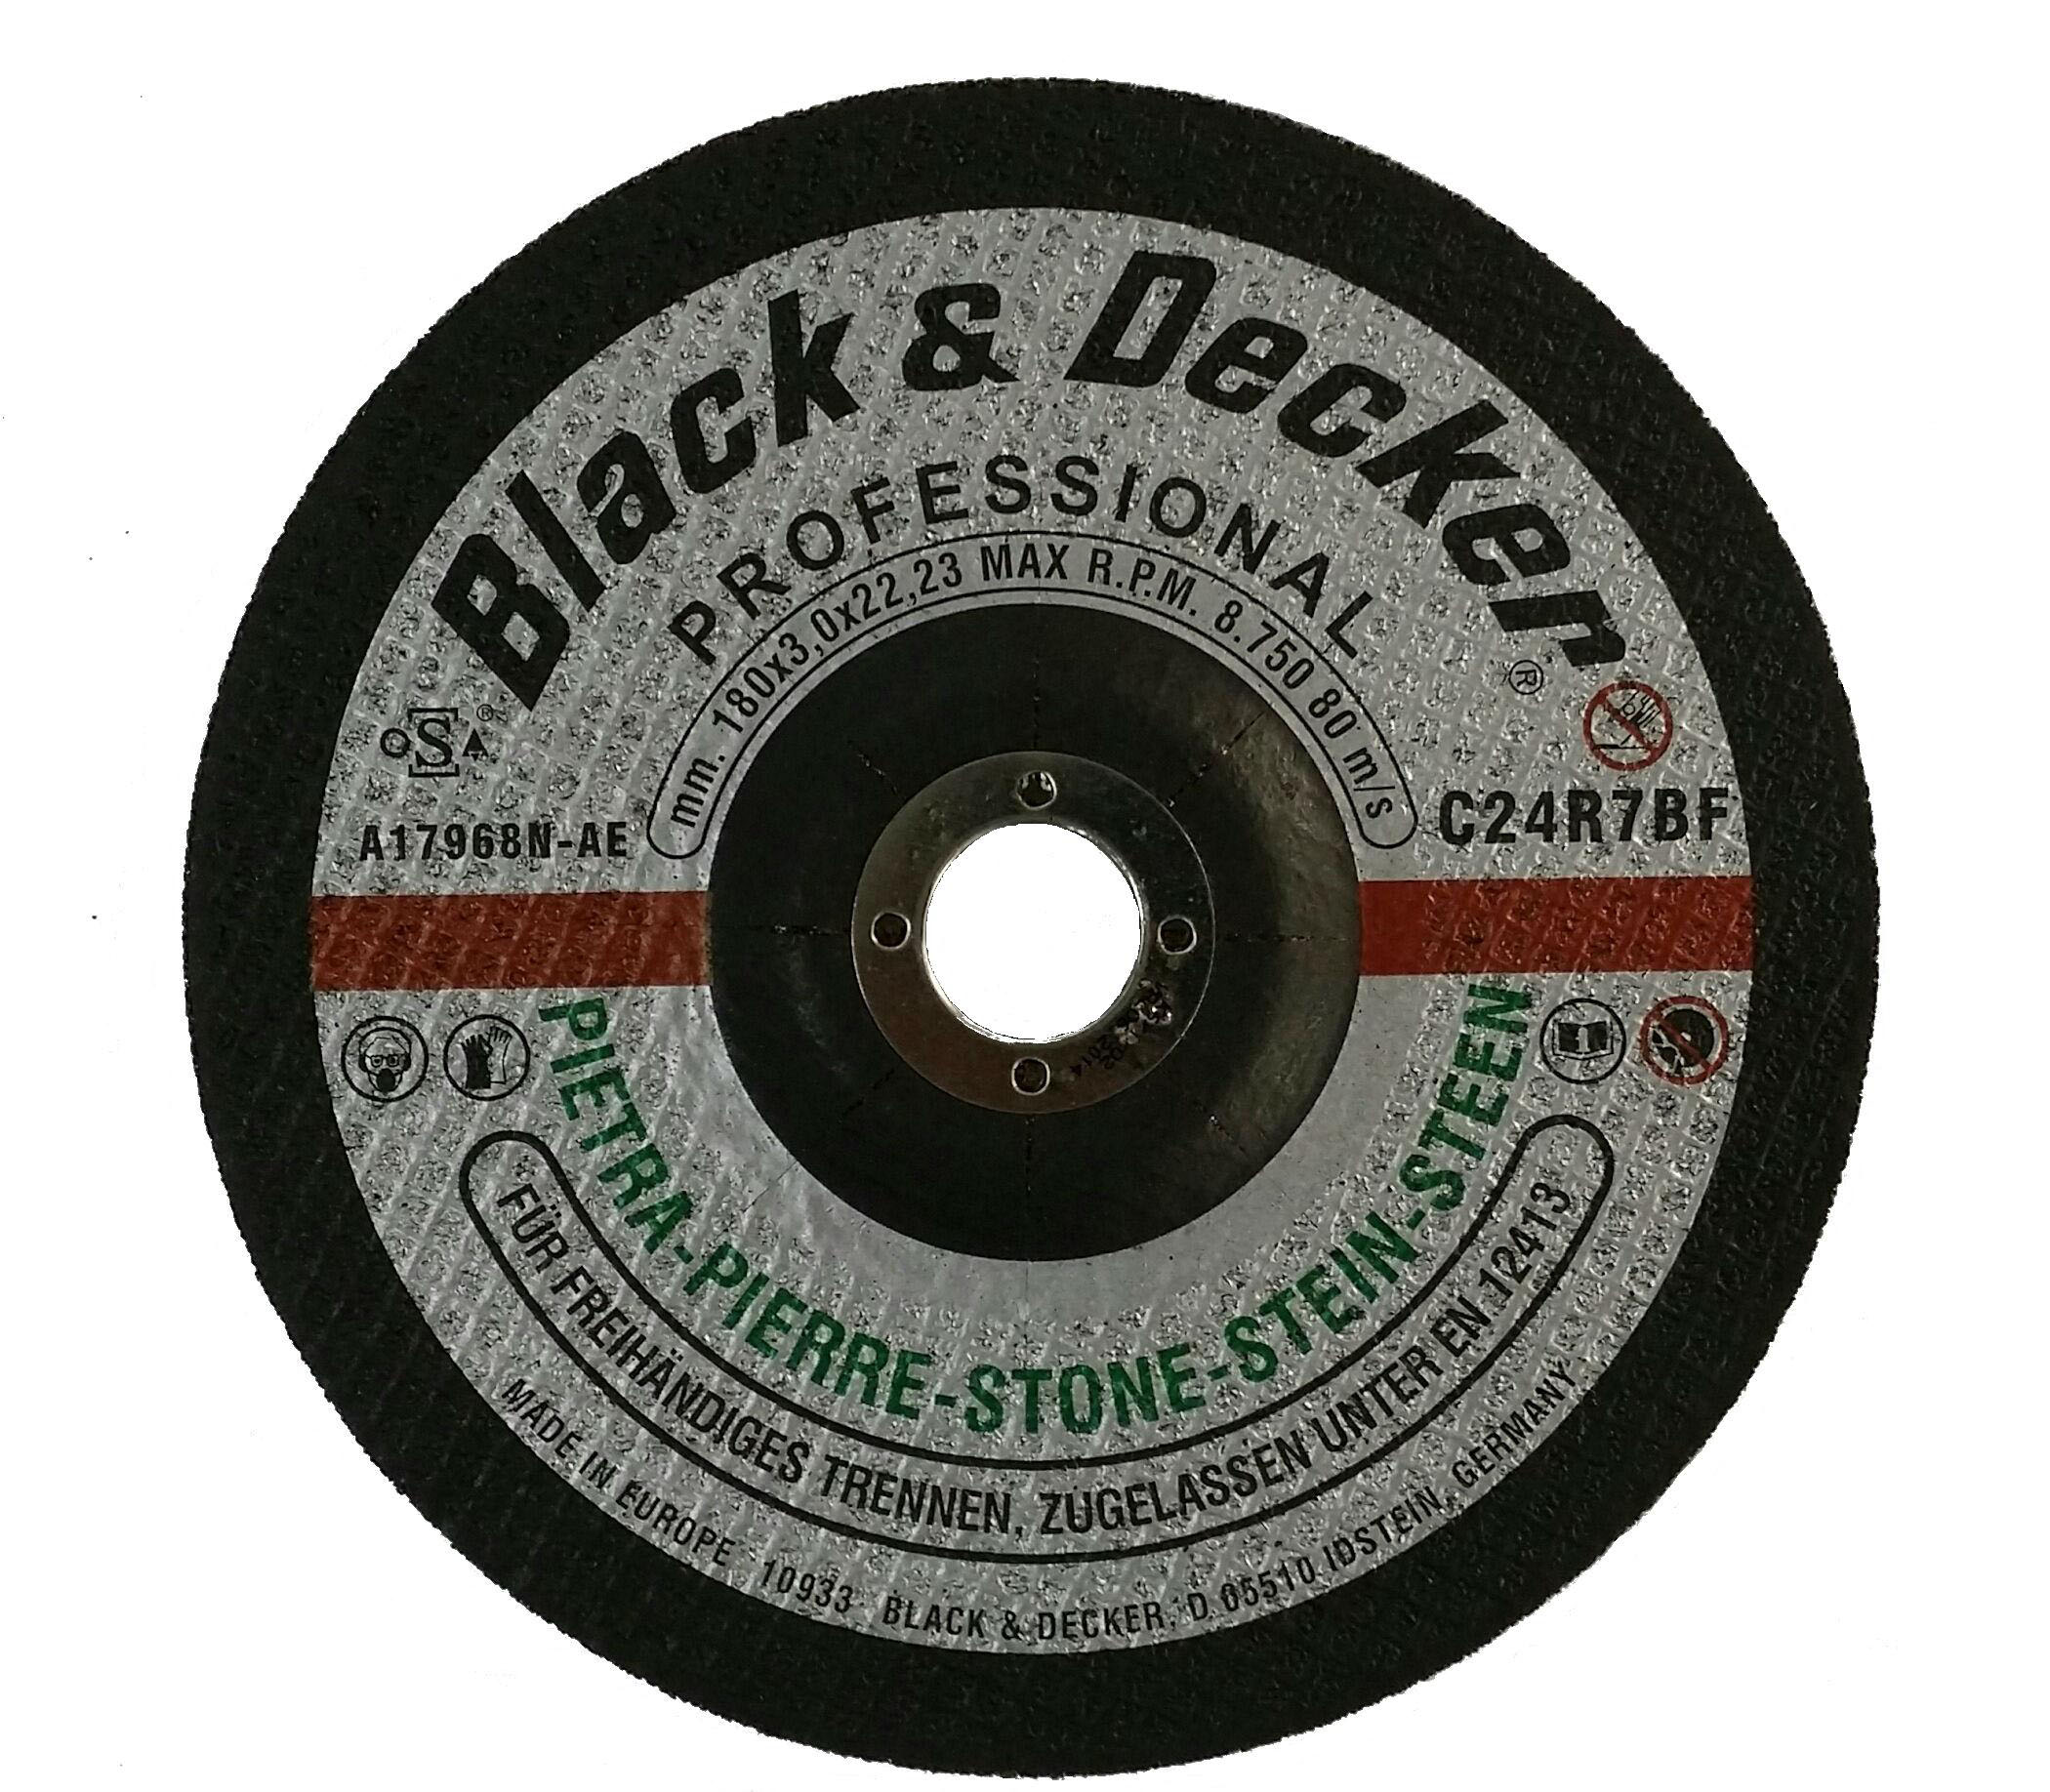 Black & Decker A17968N-AE - 7-inch Stone Cutting Disc